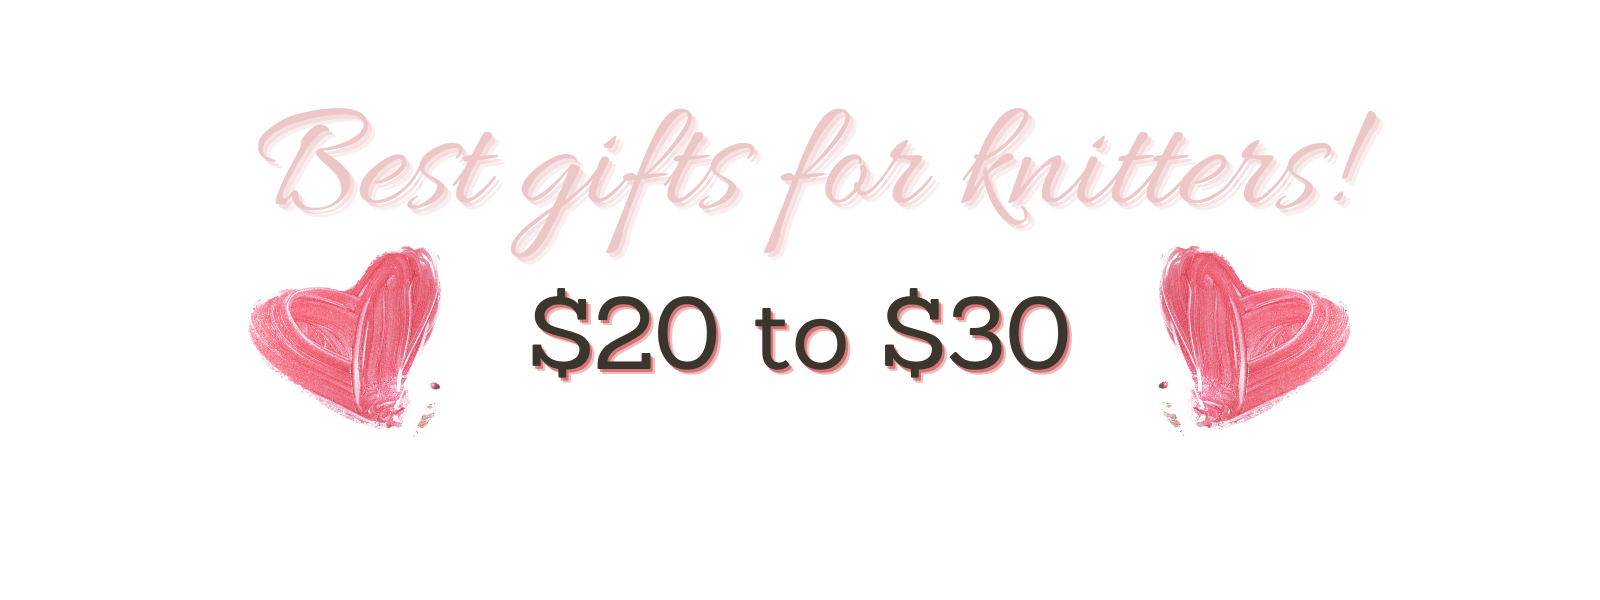 Gifts for knitters $20 to $30